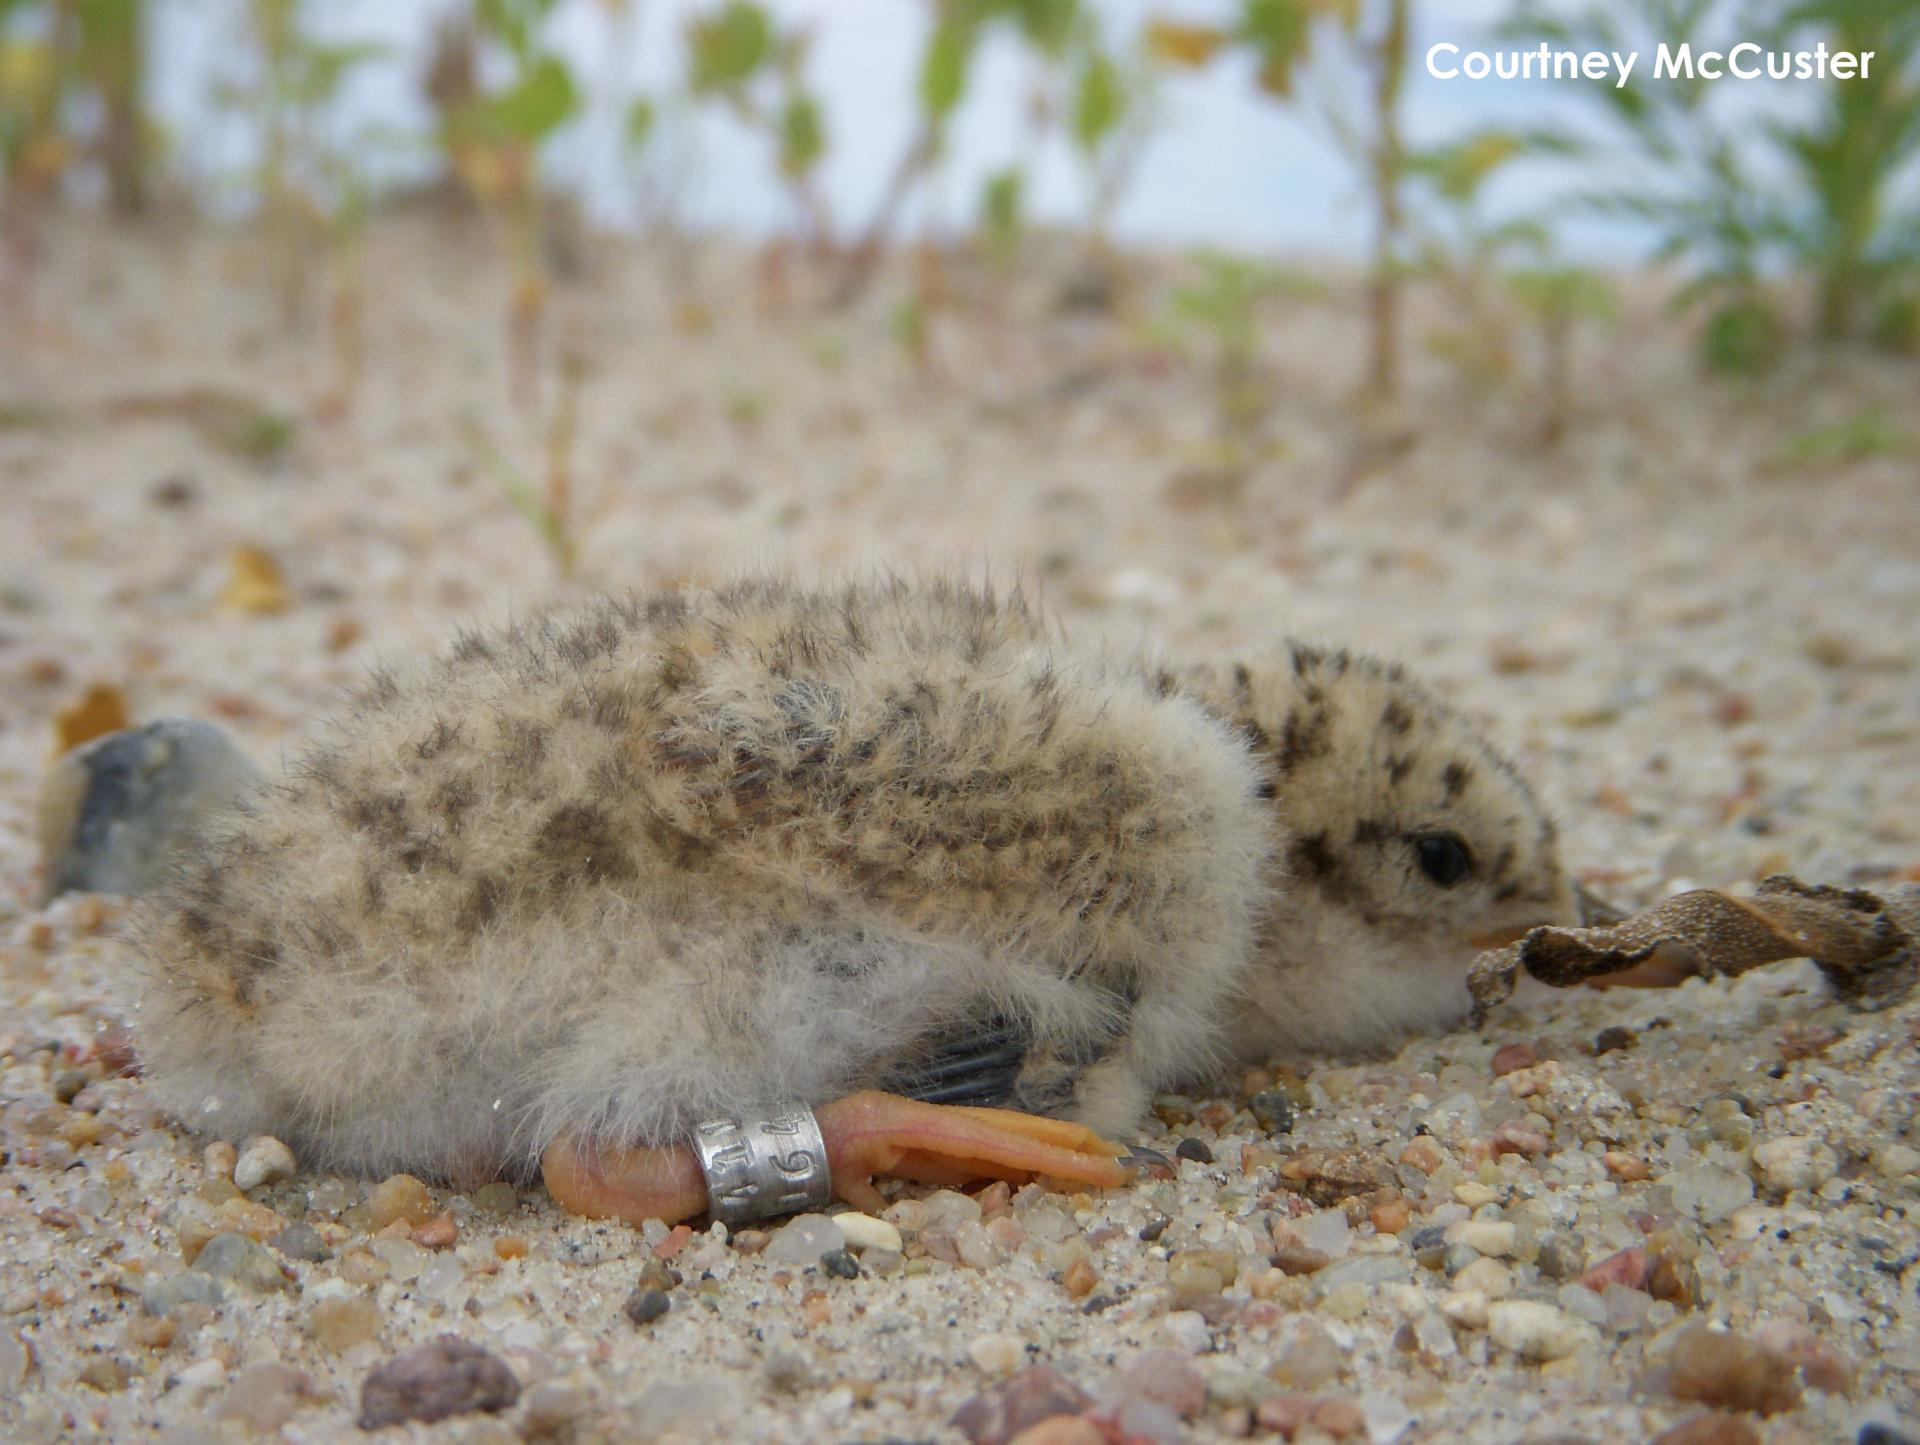 5-day-old tern chick with his metal leg band